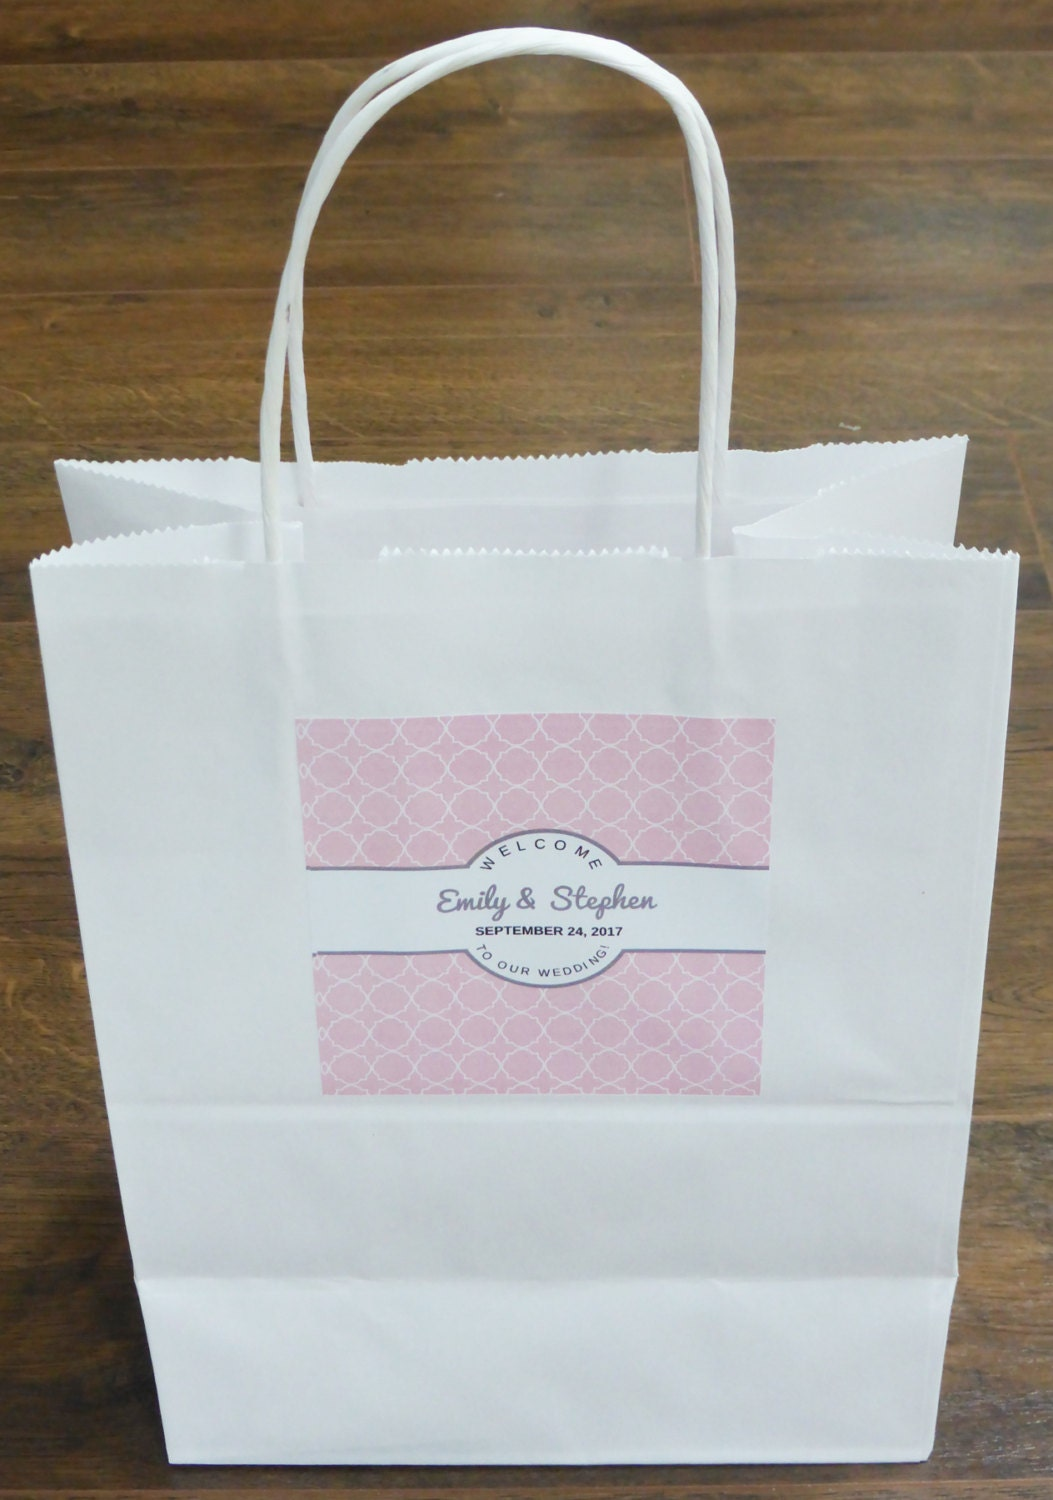 Wedding Labels For Gift Bags: Wedding Welcome LABELS ONLY For Guest Bags Wedding Favor